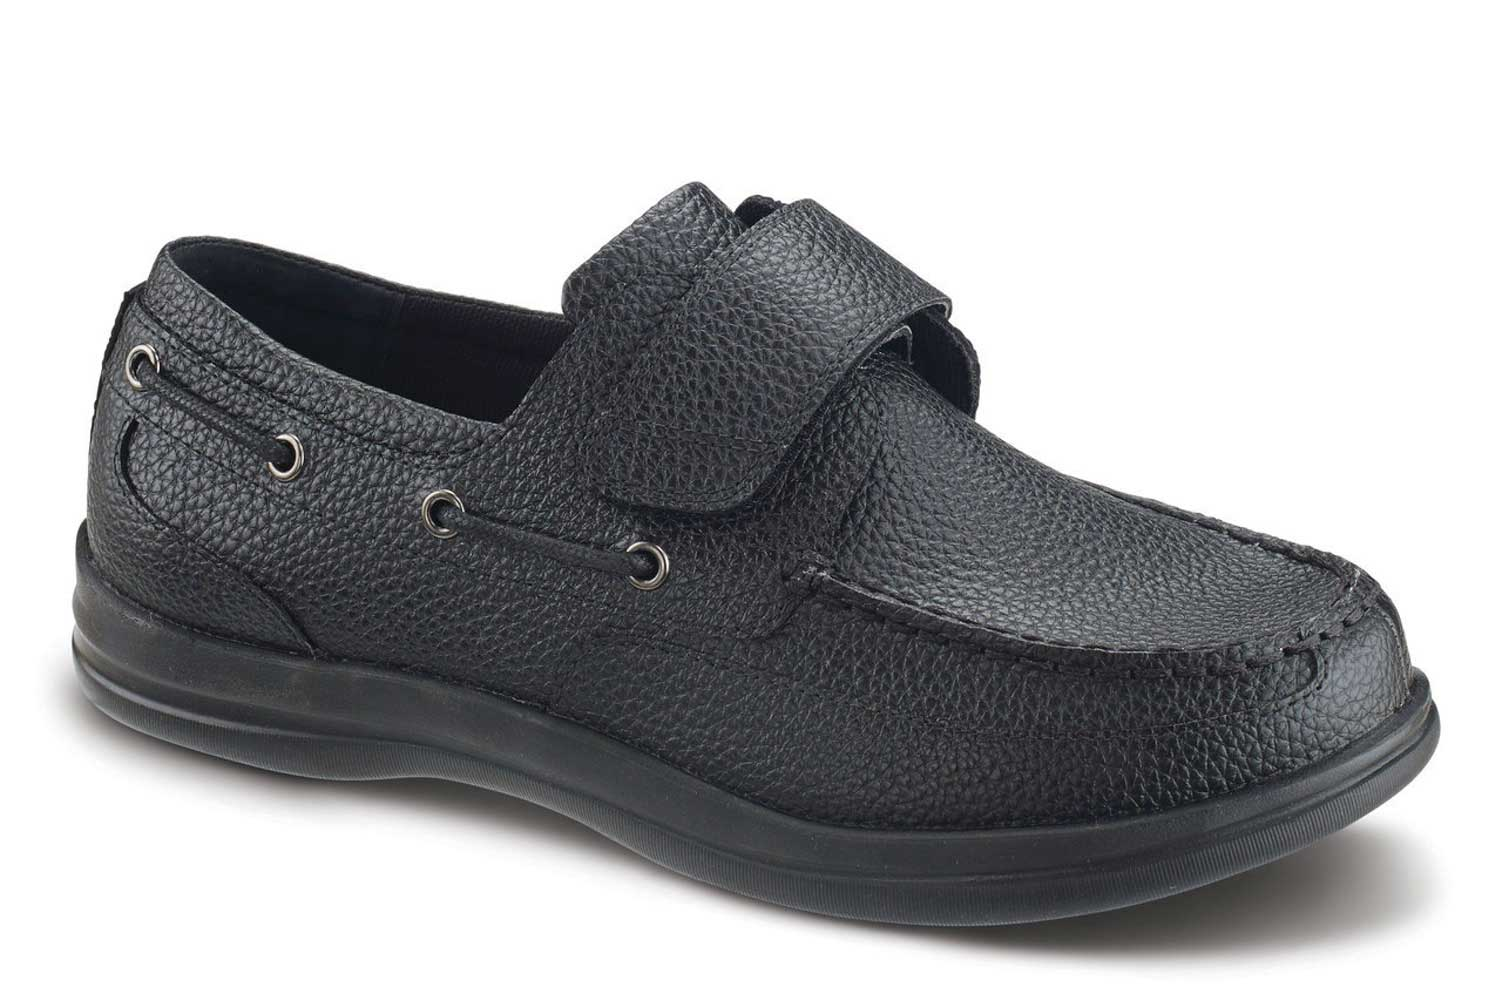 Apex Shoes Classic Strap Boat Shoe A2000M - Casual Walking Shoe